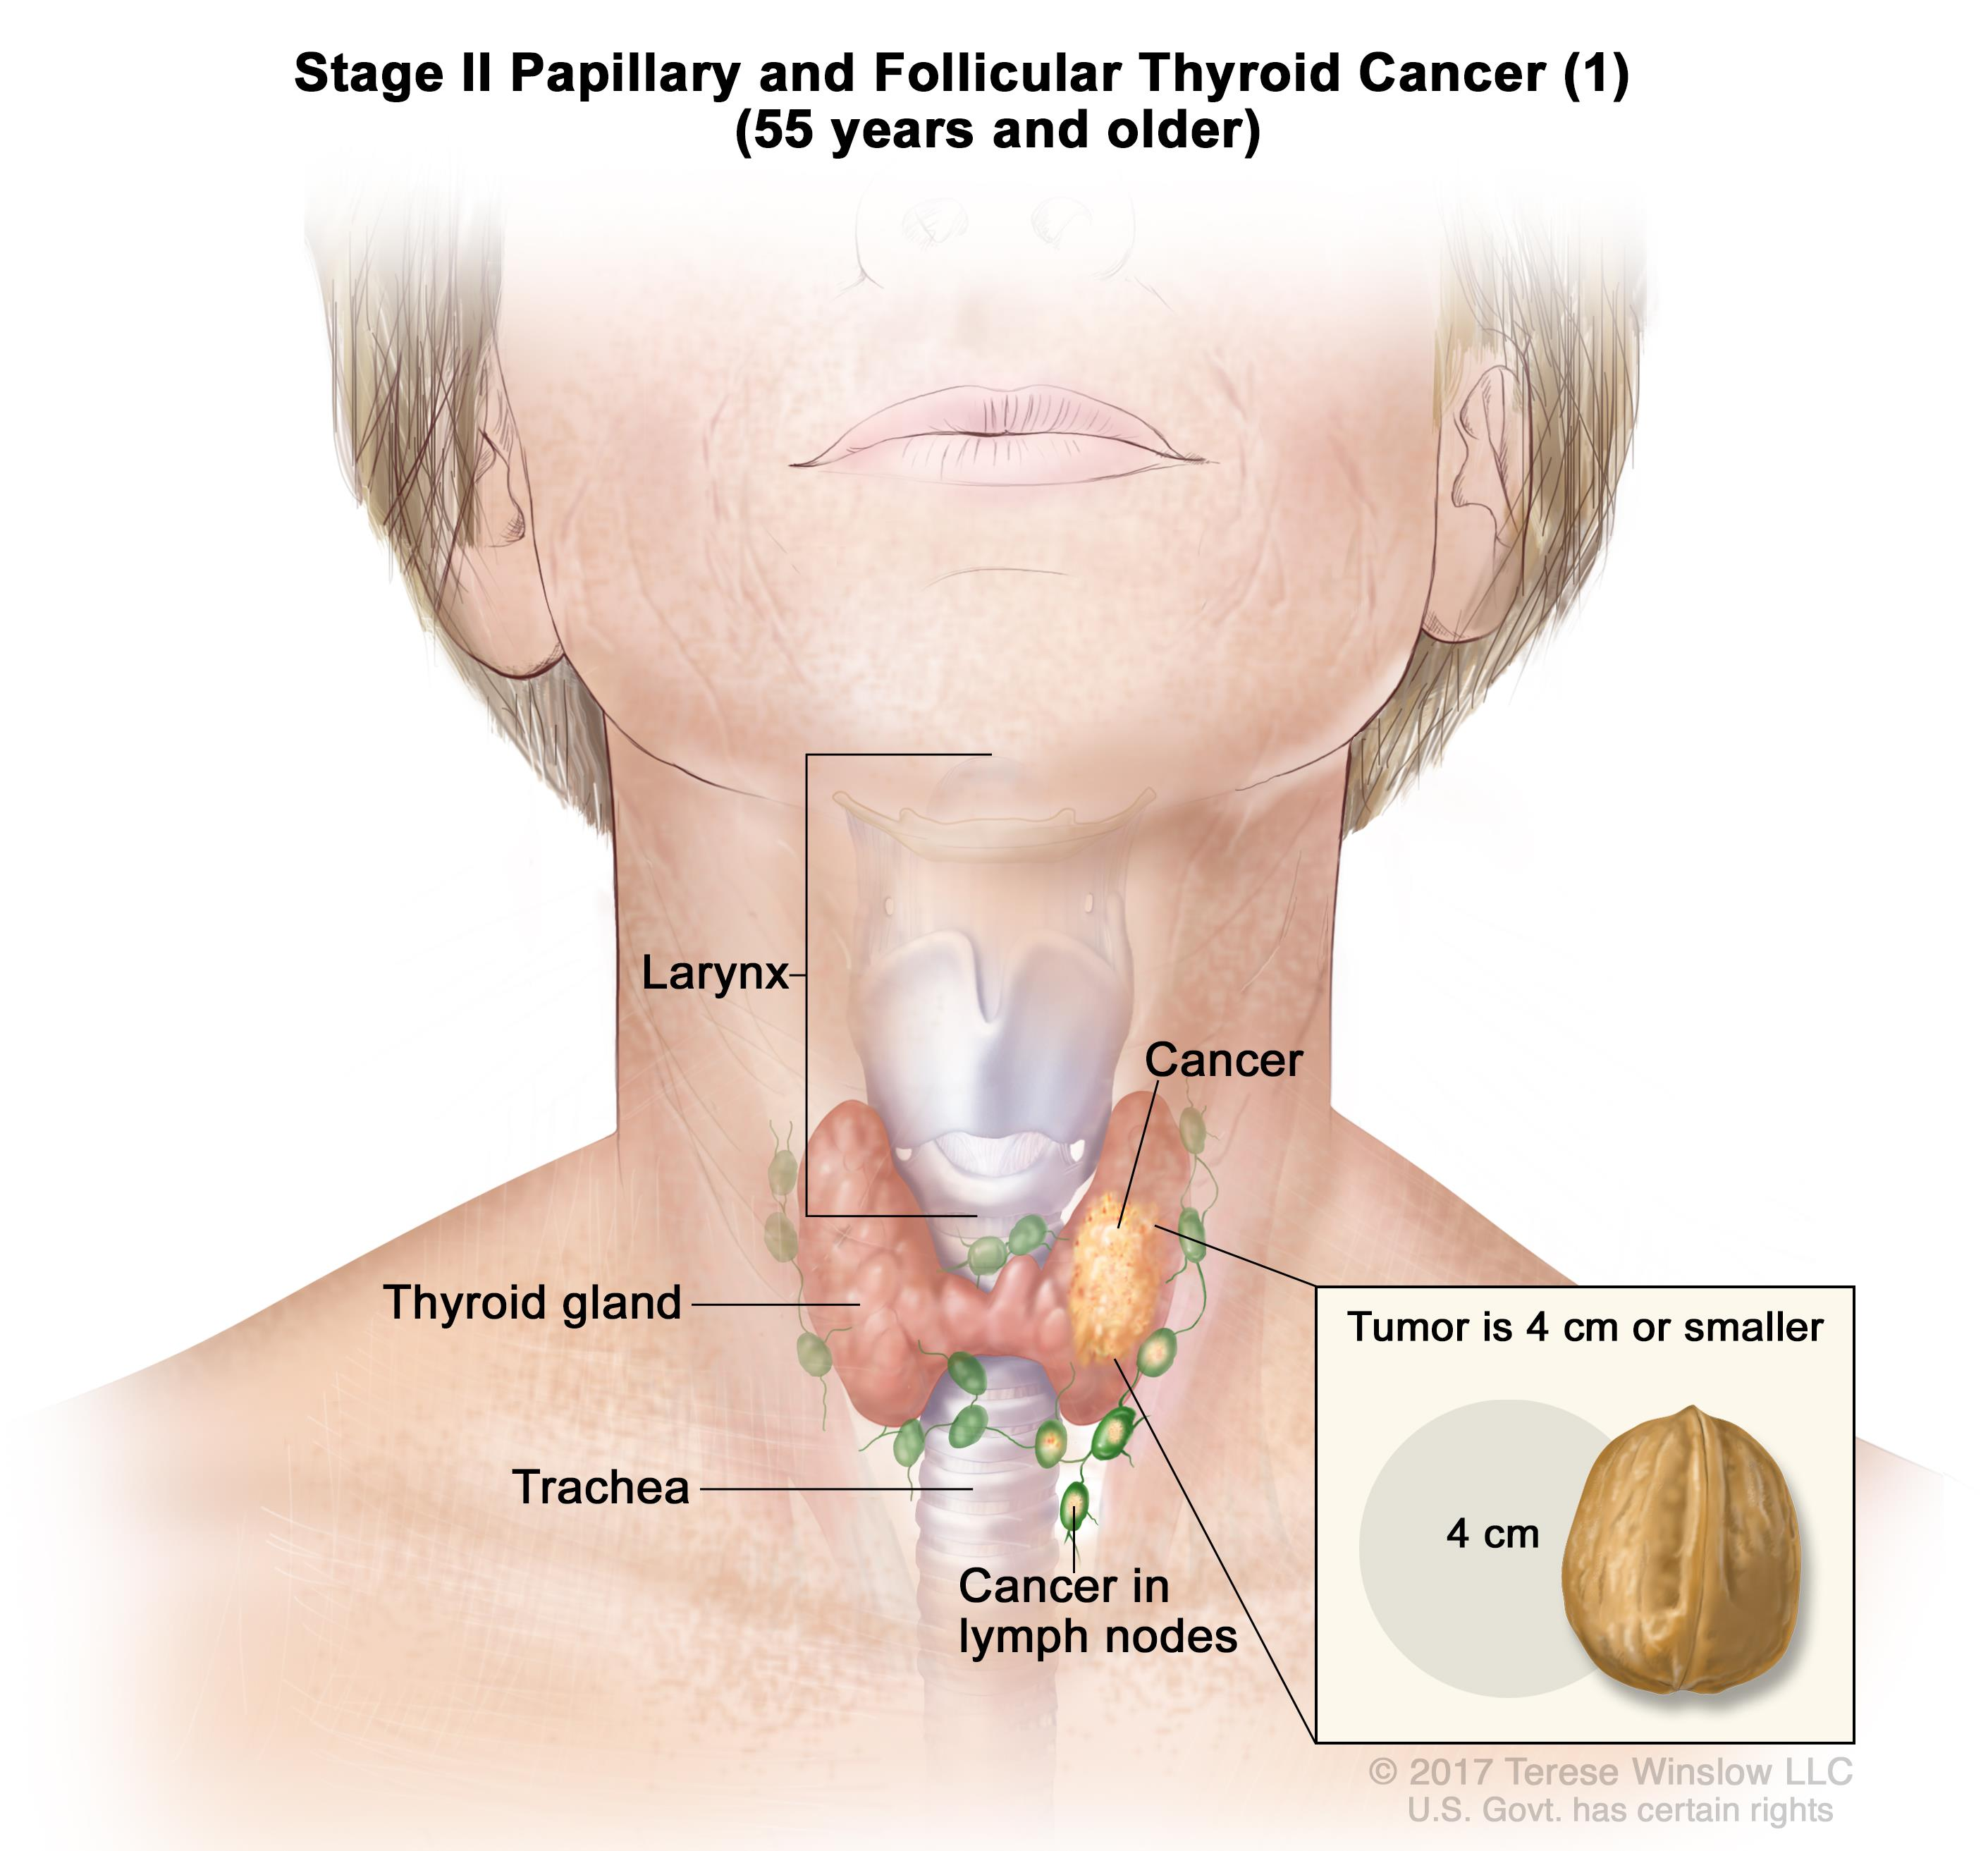 Stage II papillary and follicular thyroid cancer in patients 45 years and older; drawing shows cancer in the thyroid gland. The tumor is larger than 2 centimeters but not larger than 4 centimeters. Also shown are the larynx and trachea.